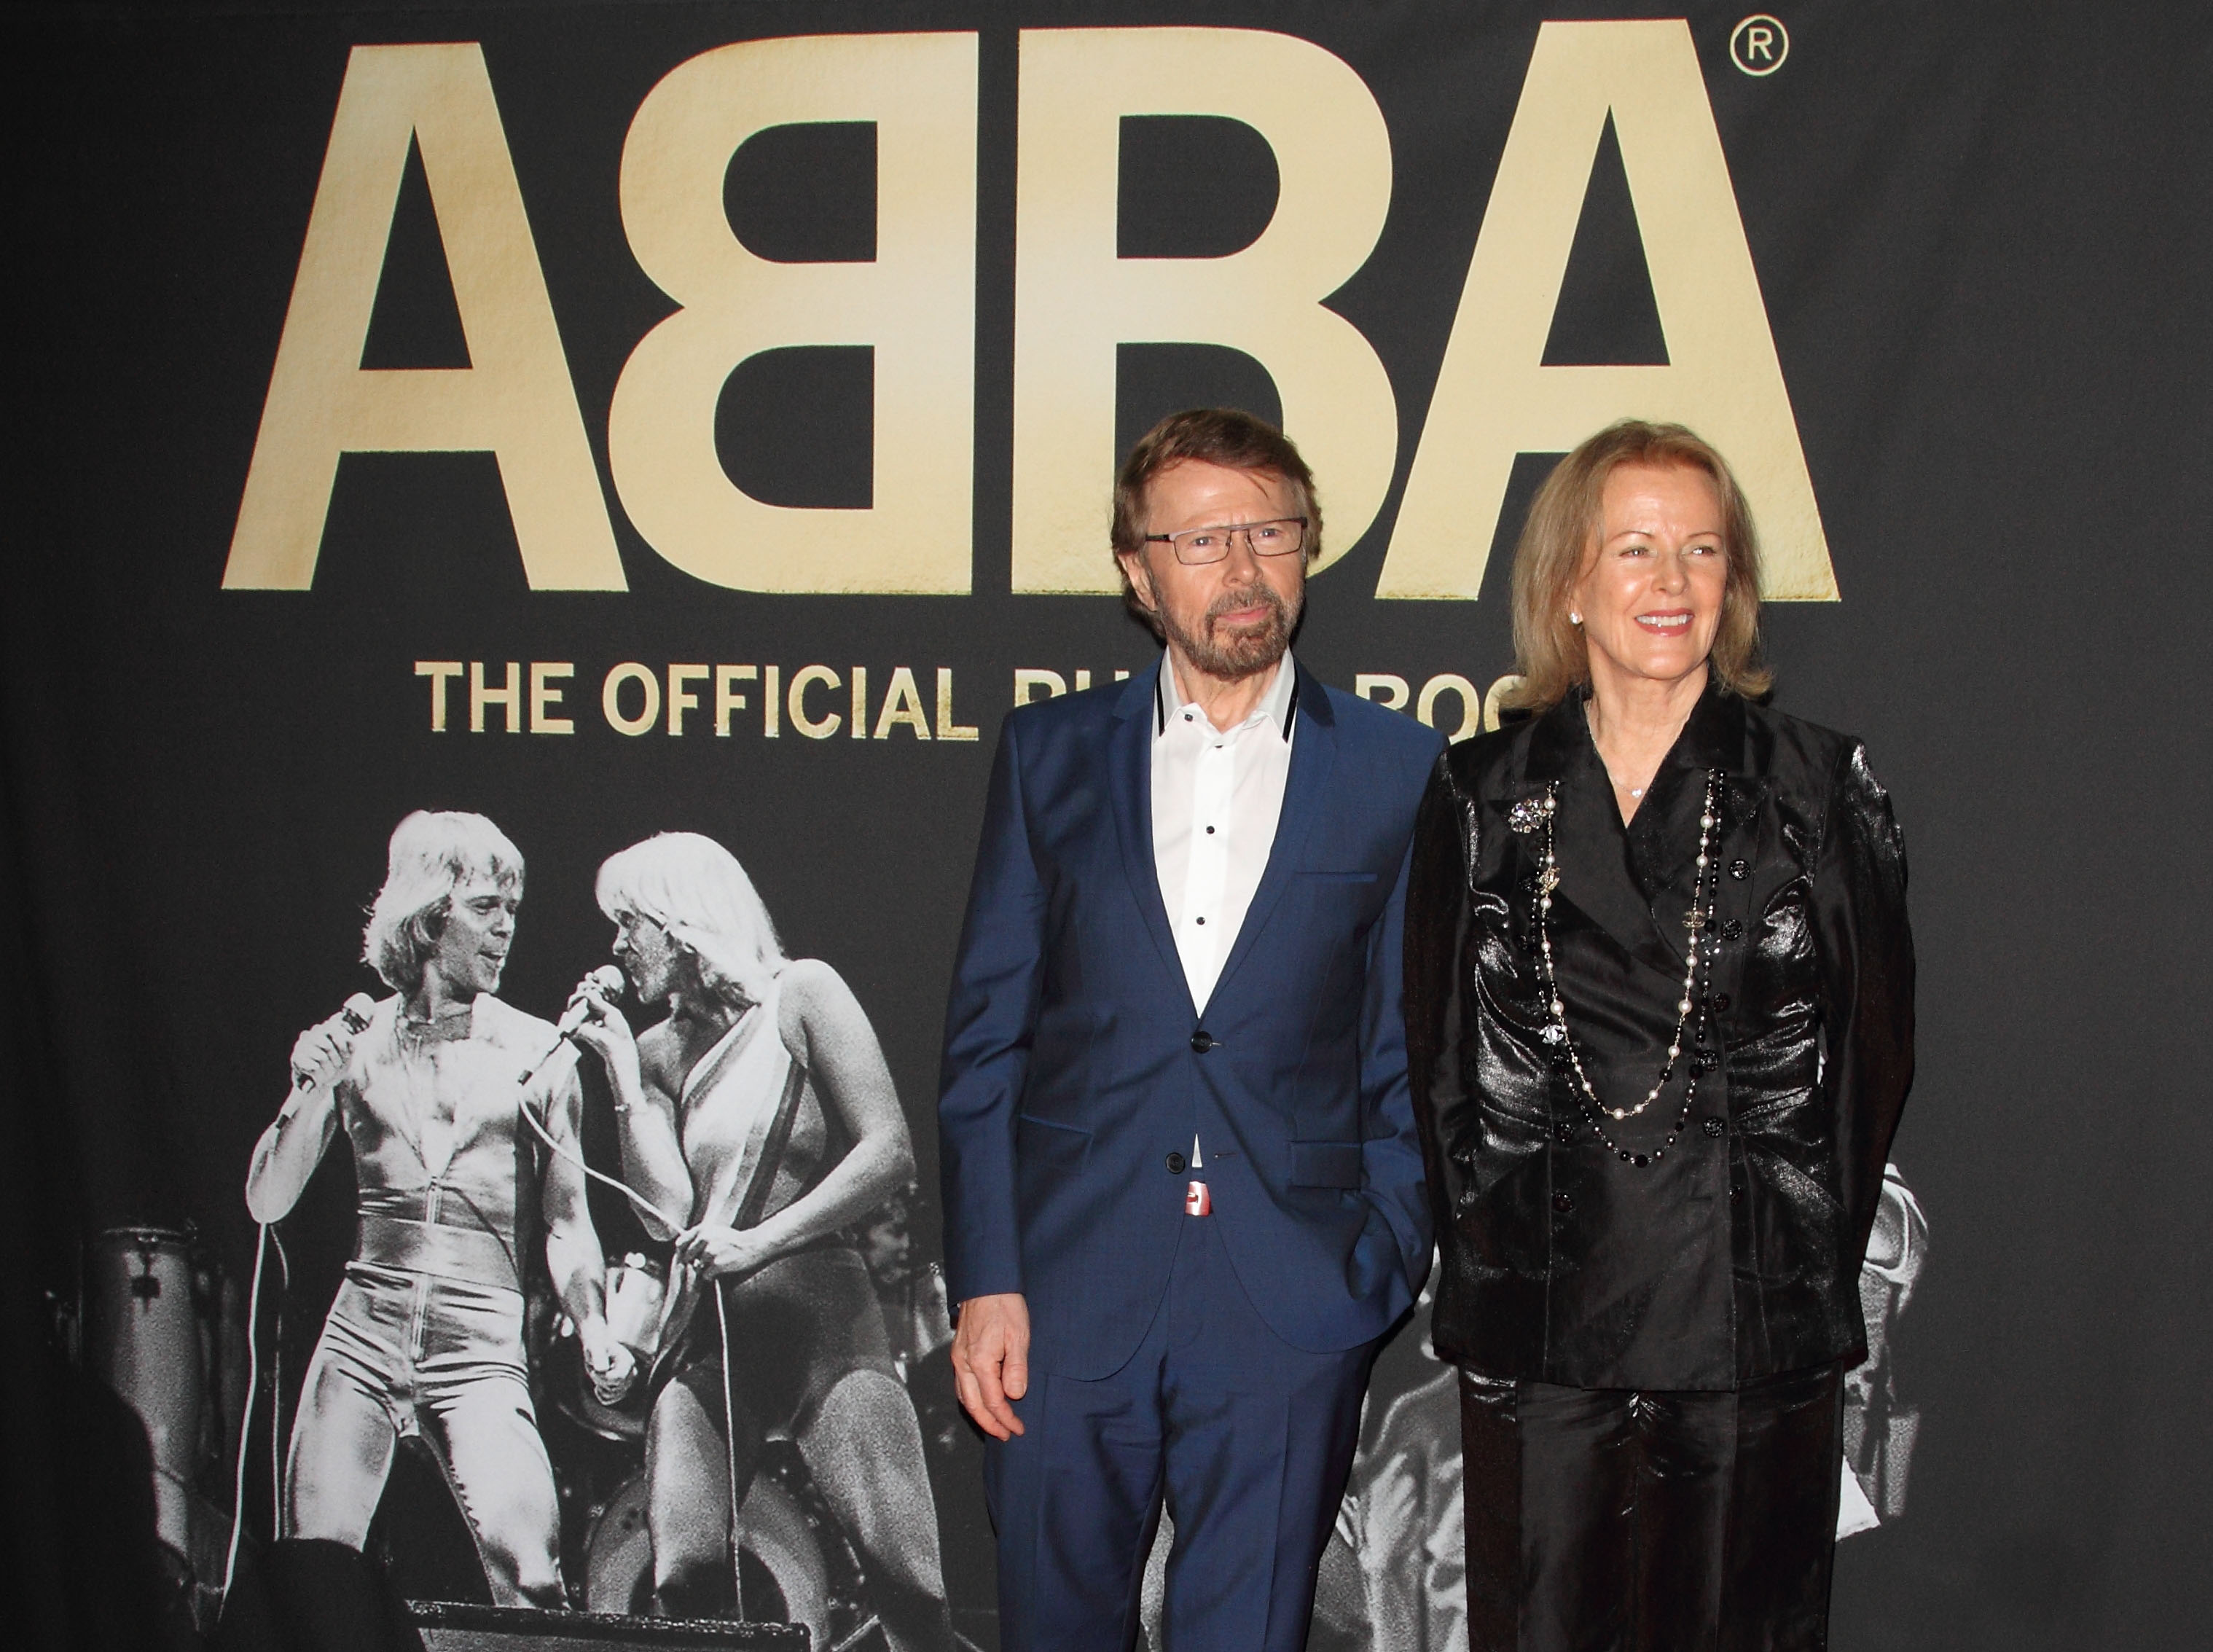 After 35 Years, A New Song From ABBA Is On The Way